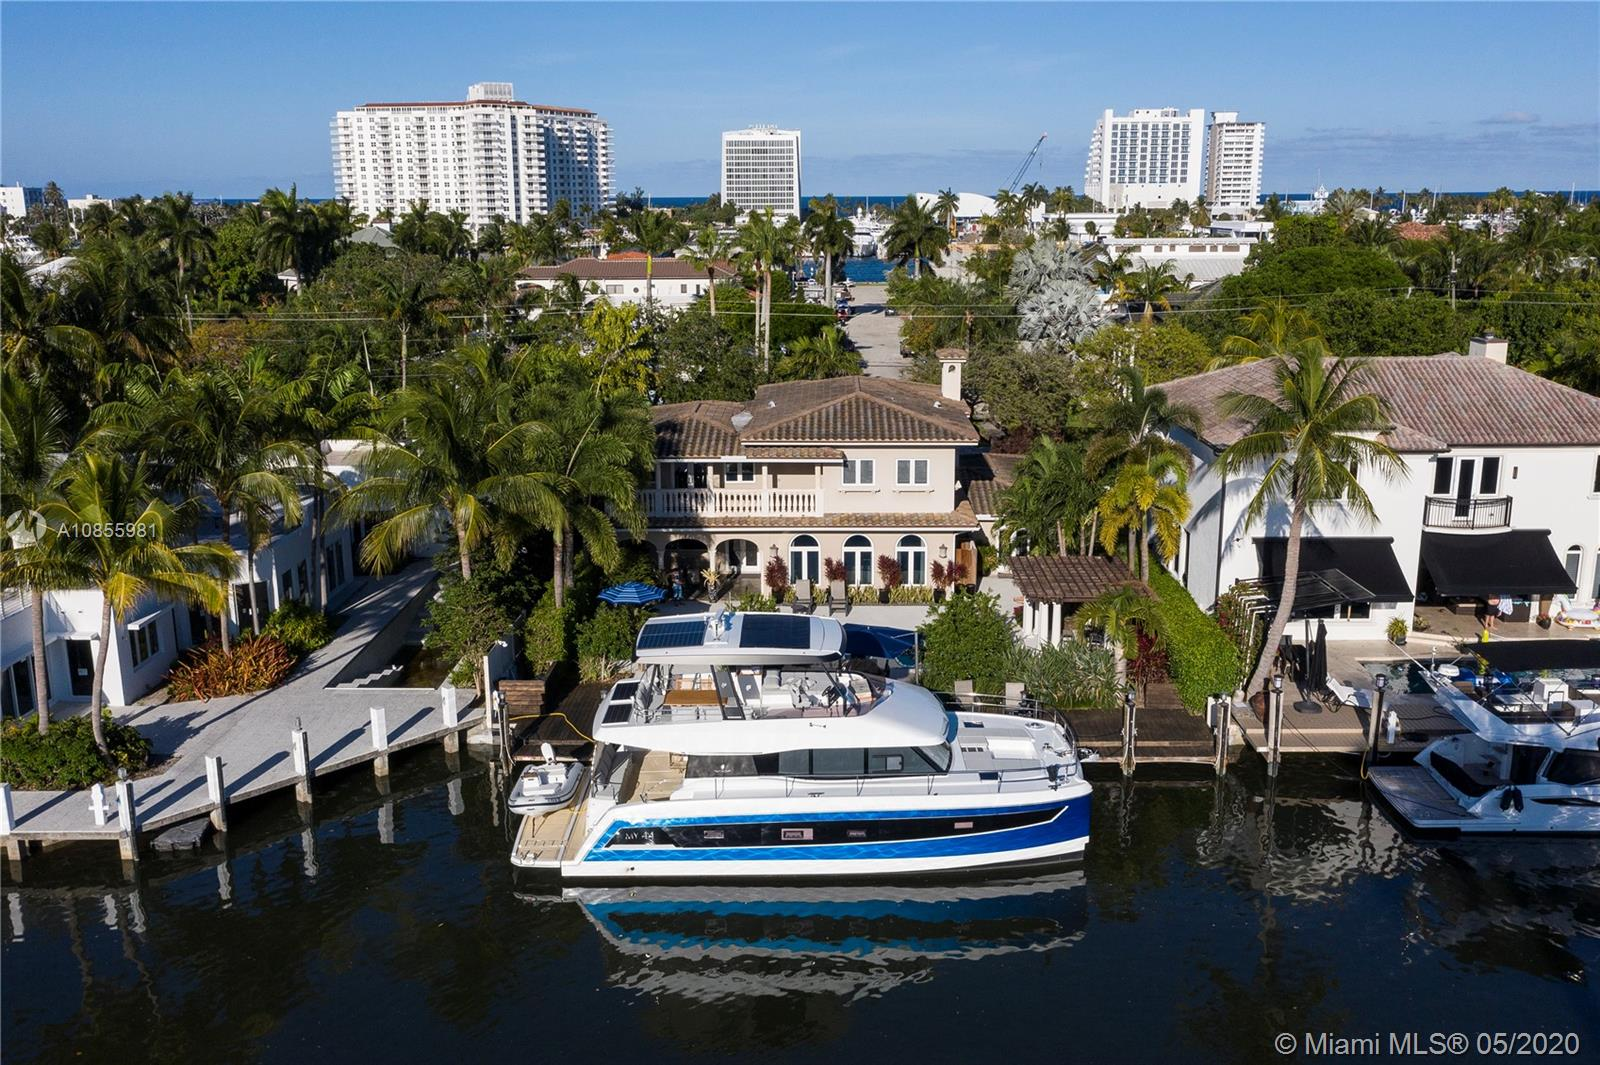 Walk to the beach and the restaurants from this desirable Las Olas Isles waterfront home in the Idlewyld community.  75ft waterfront renovated home in 2011 on a wide, deep water canal that can accommodate a boat up to 65 ft with a 30ft beam.  Direct ocean access with no fixed bridges less than 20 minutes to the ocean.  The only community in the Las Olas Isles with a security gate and nightly security patrol. Huge back yard with new pavers, built in gas grill and covered areas that make for great entertaining.  A true family home away from home, perfect for boaters, beach-goers and those who enjoy the walkable lifestyle.  This home is tastefully furnished by an interior designer.  (No master bedroom furniture)